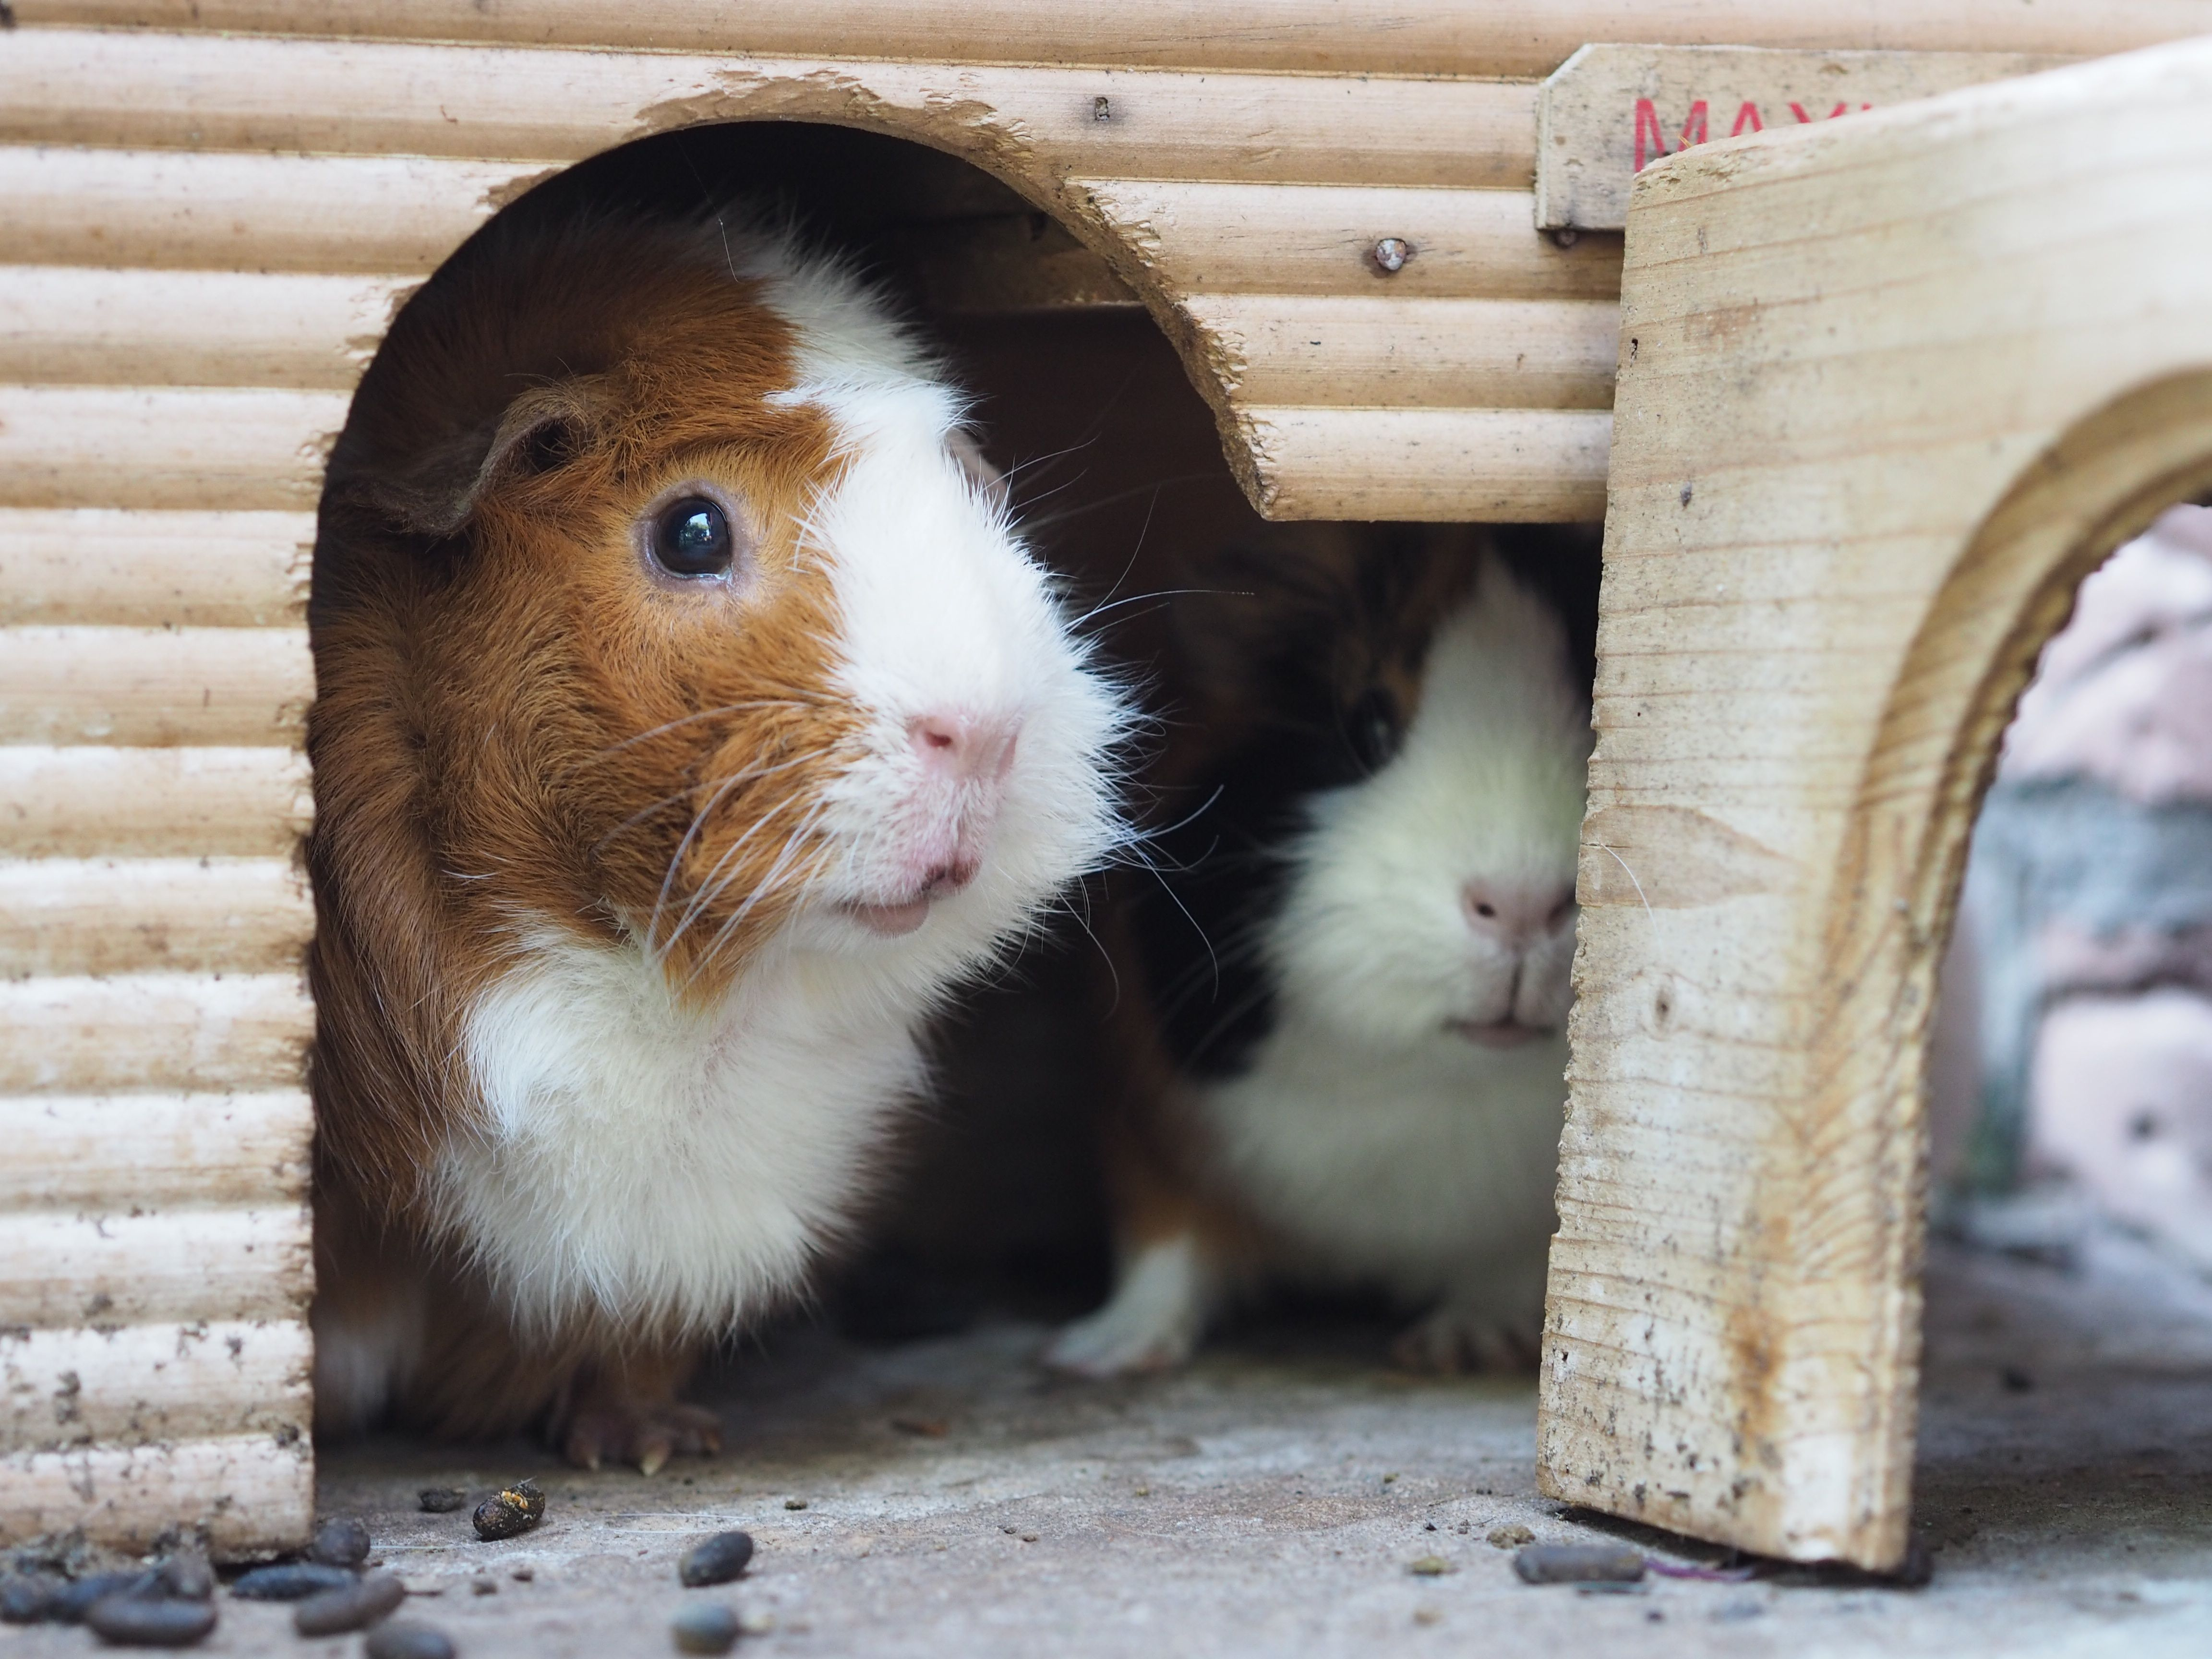 The 9 Best Basic Guinea Pig Supplies to Buy in